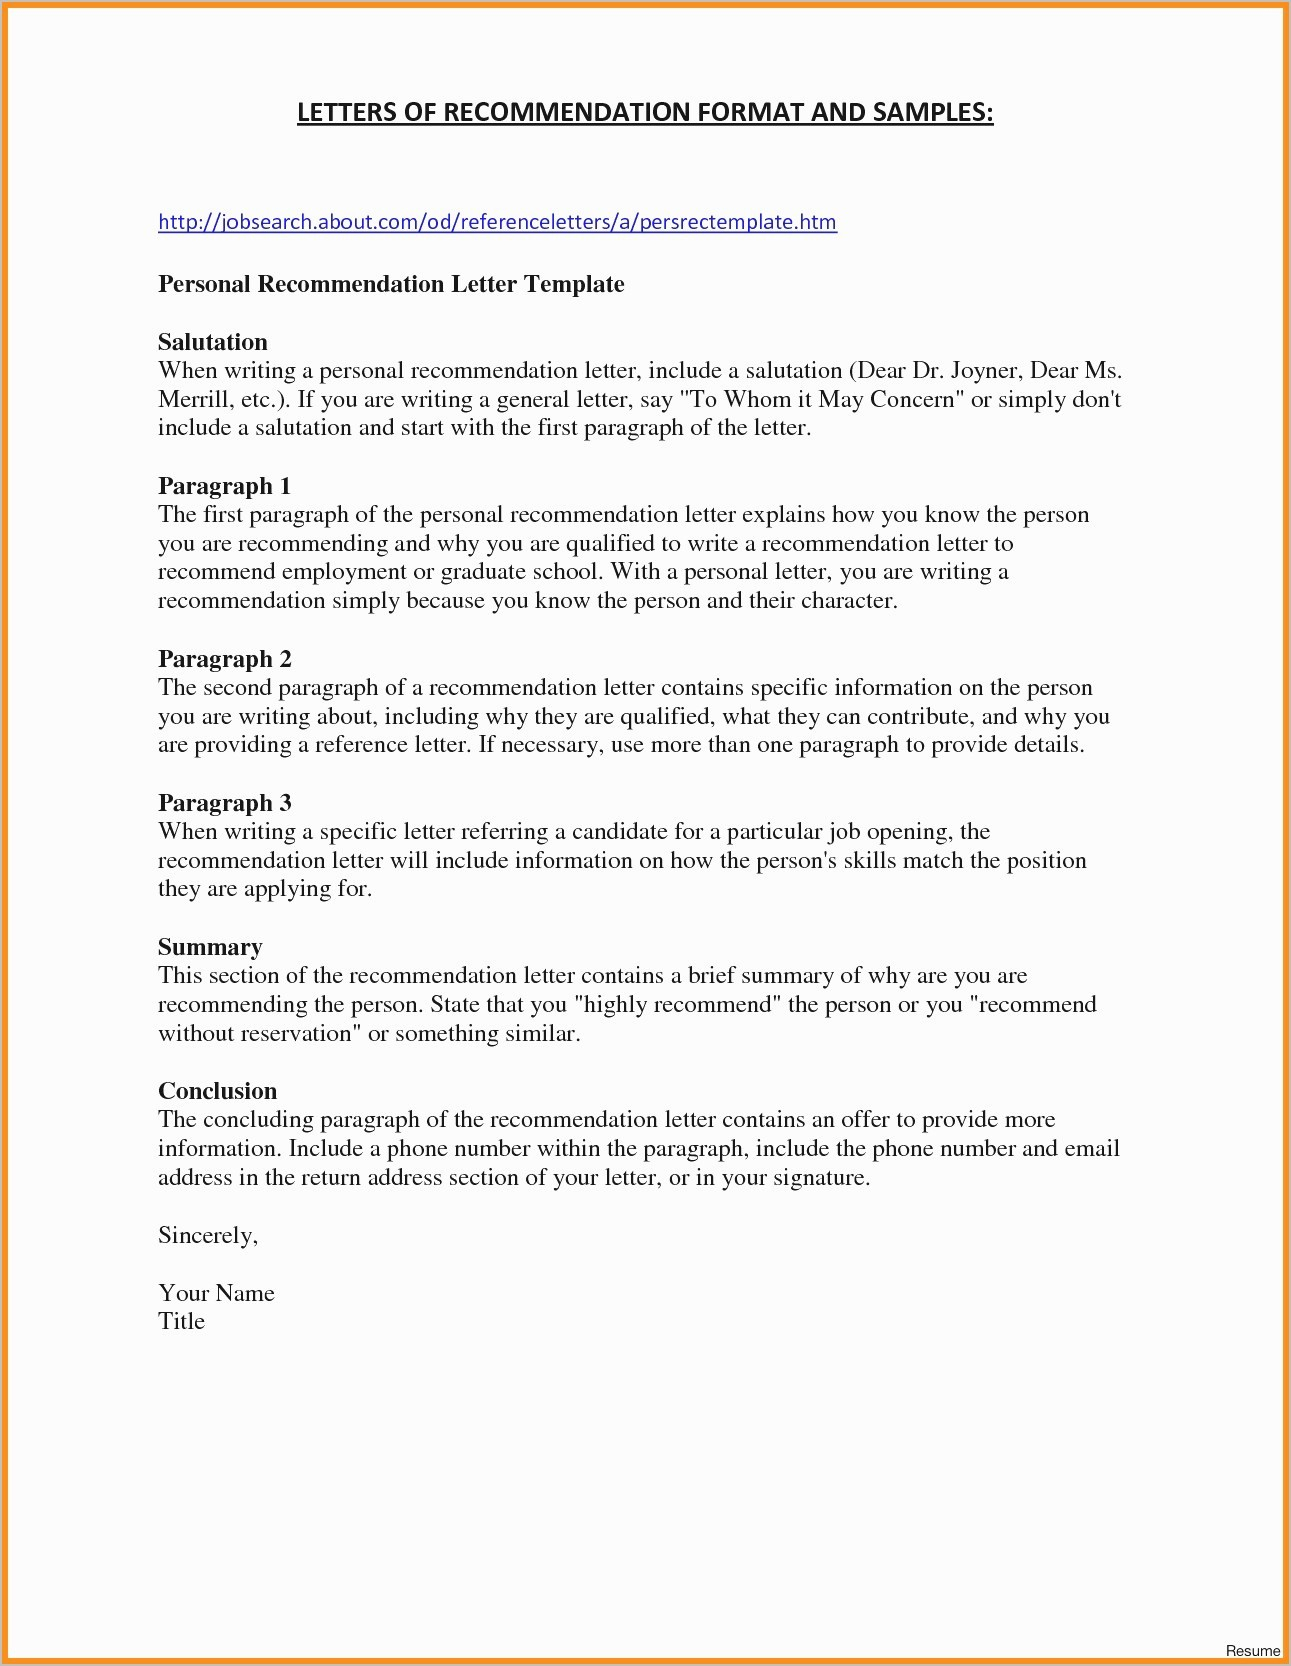 Grad School Letter Of Recommendation Template - Letter Re Mendation for School Job Inspirationa Inspirational